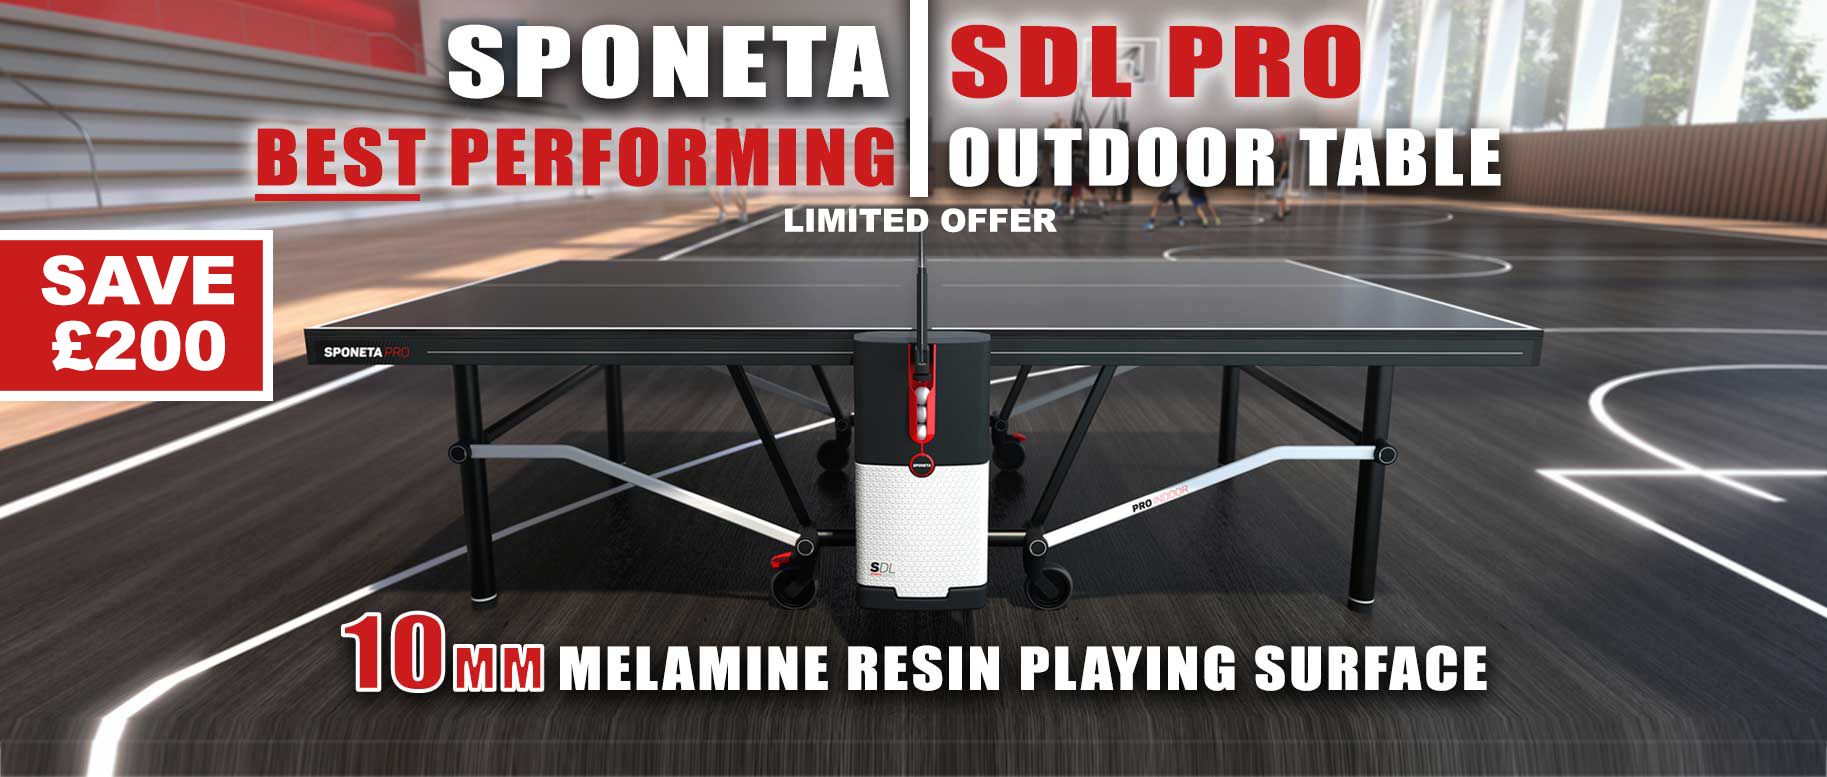 Sponeta SDL Pro Outdoor Table Tennis Table